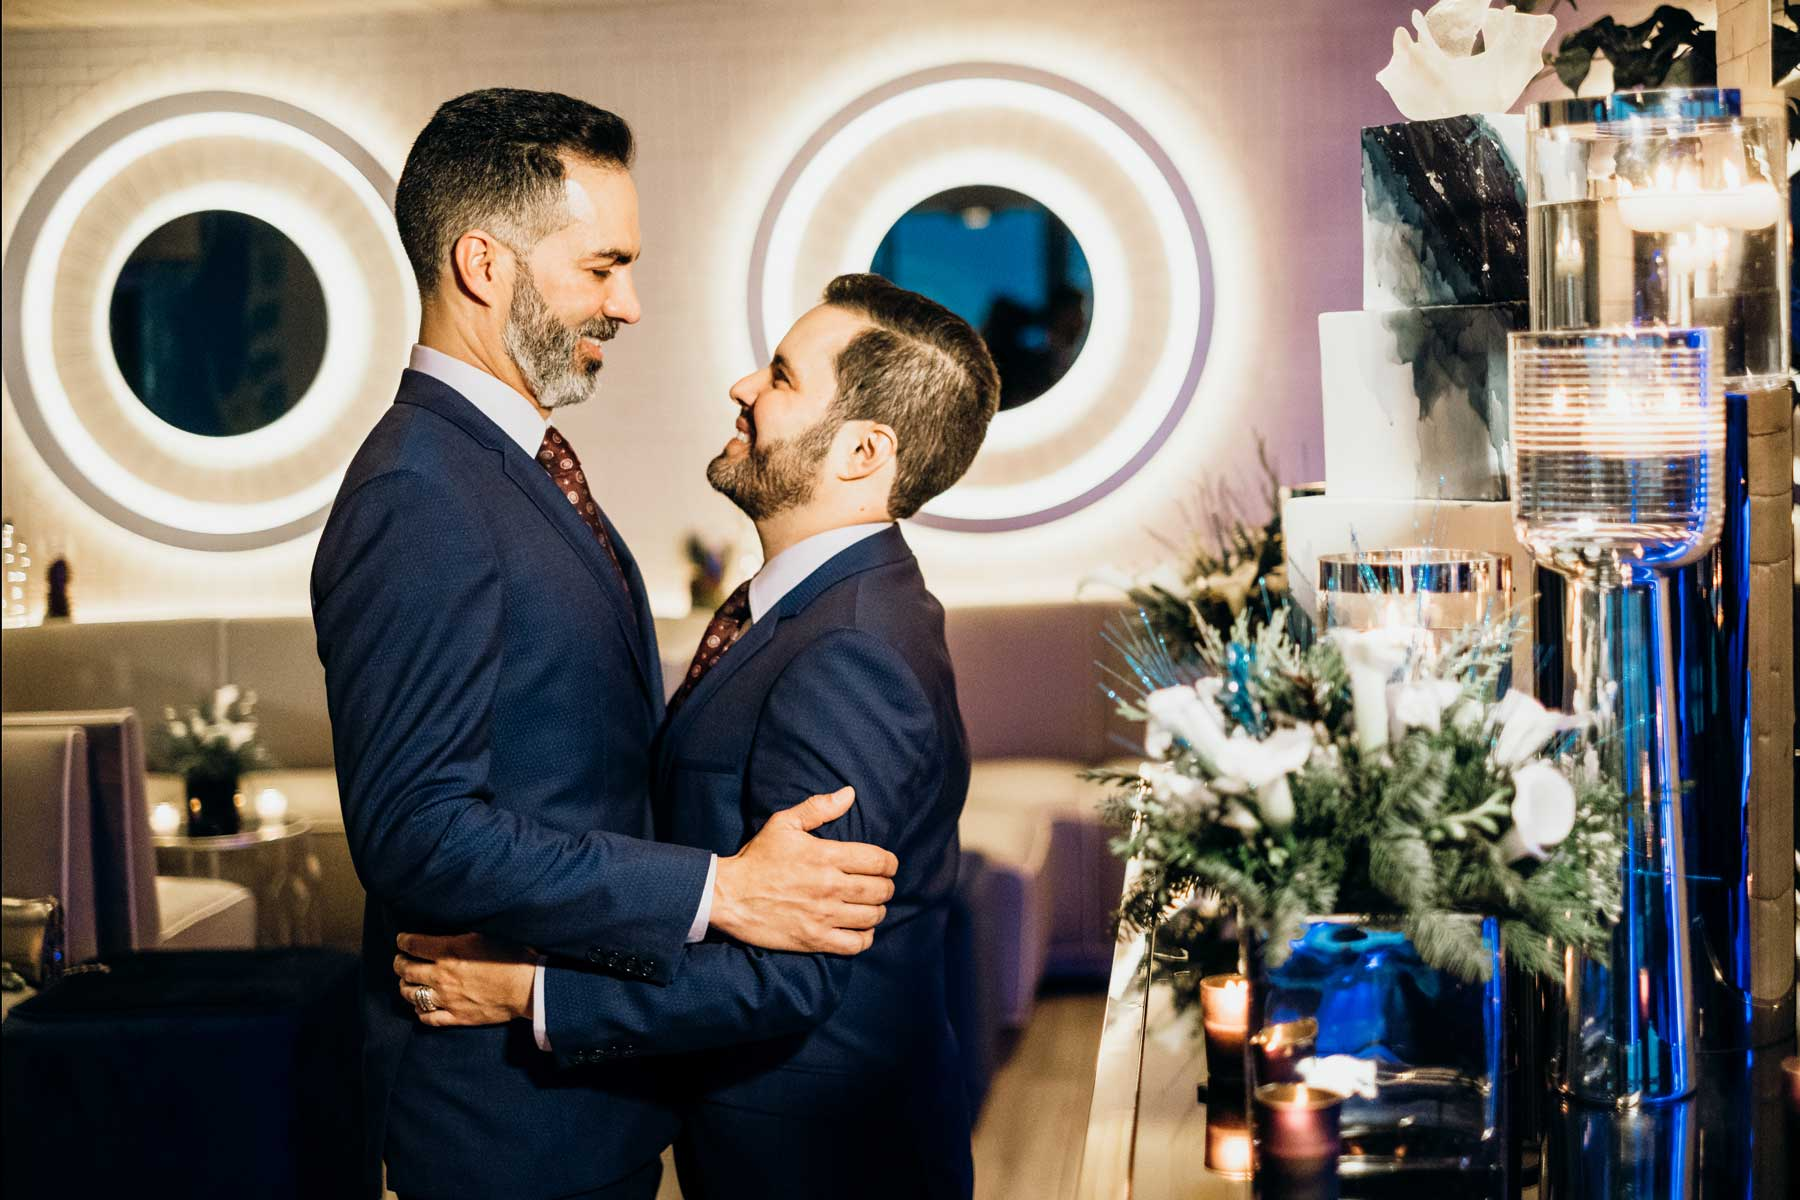 Two men in suits embracing in decorated room